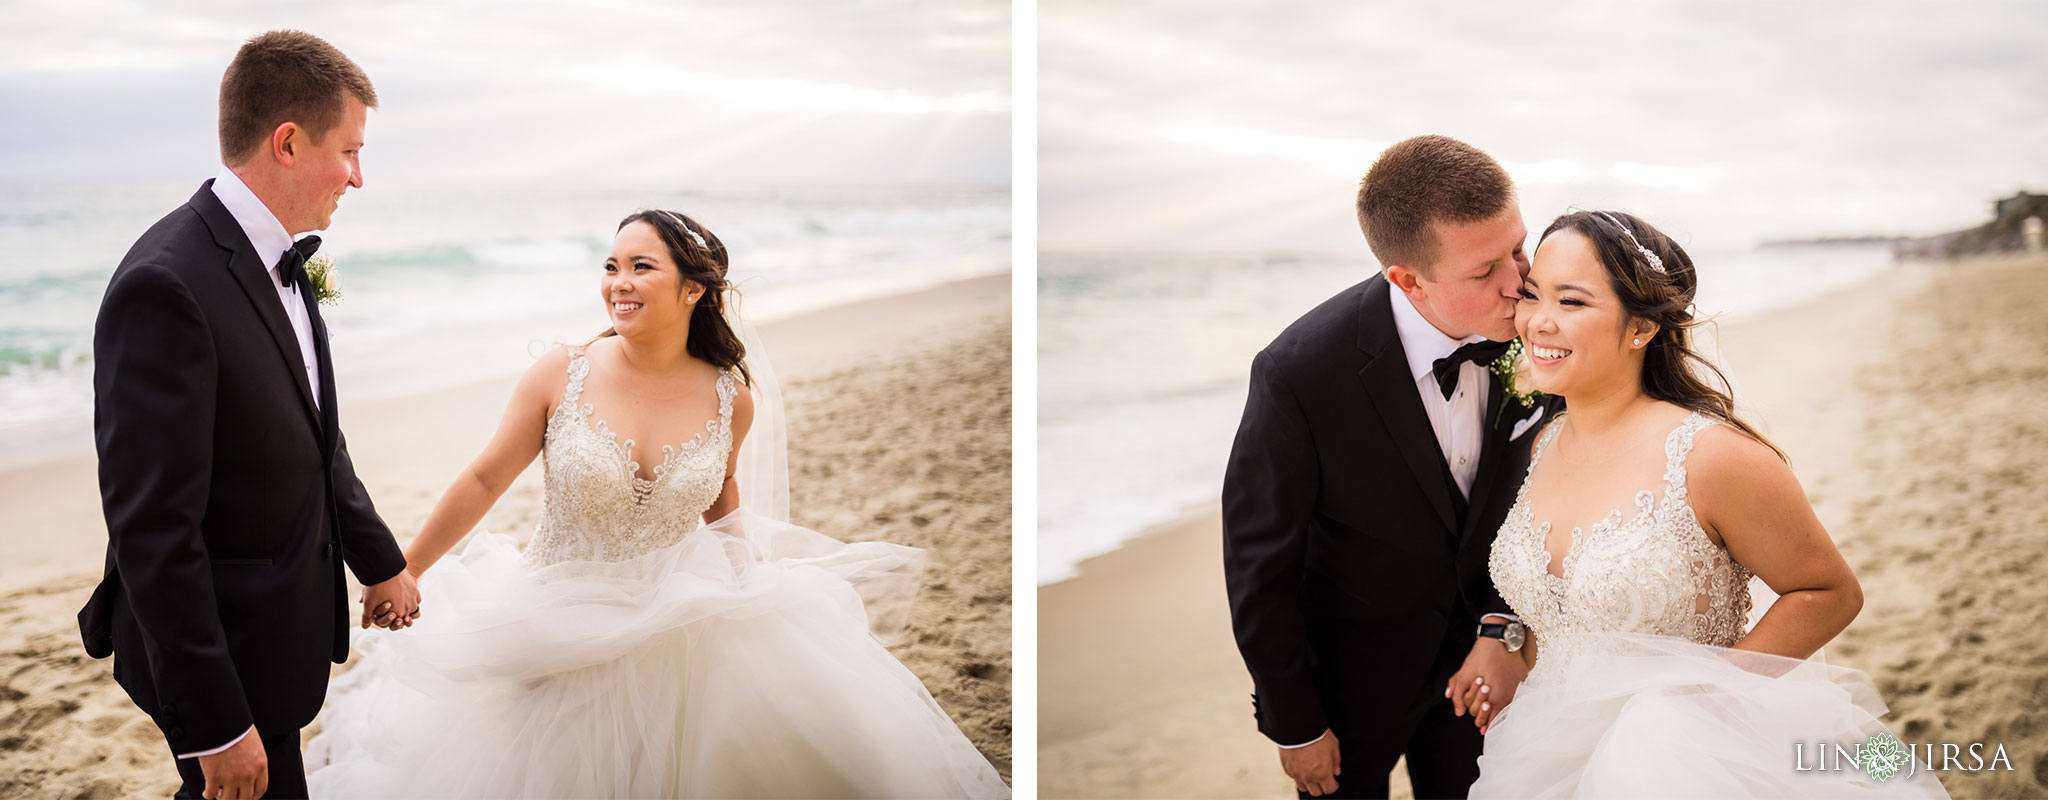 22 surf and sand resort laguna beach wedding photography